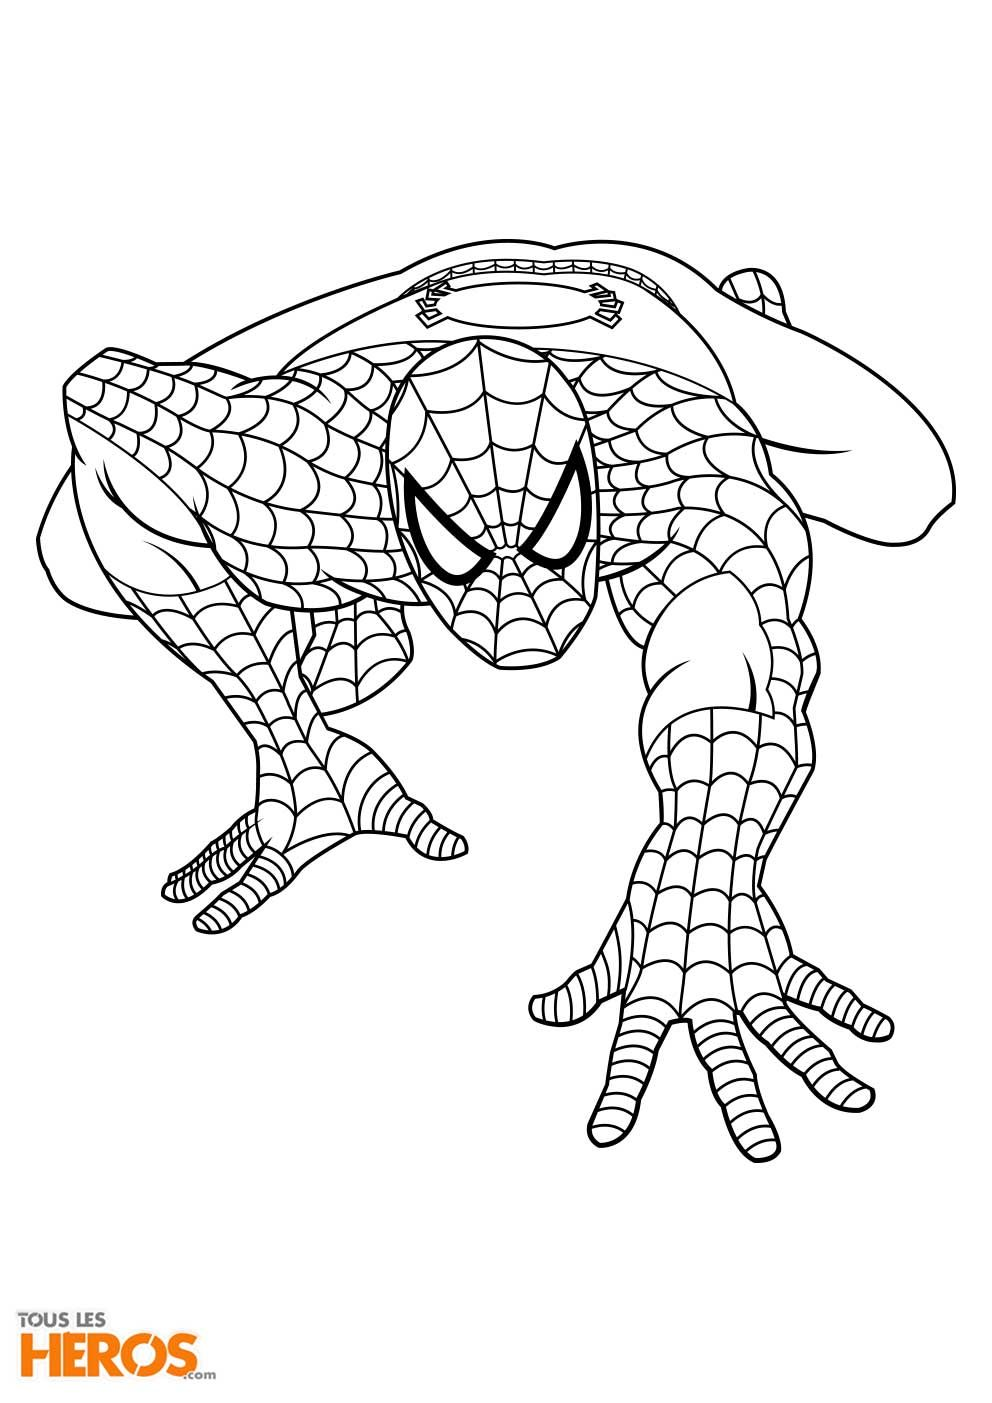 Coloriages spiderman imprimer sur le blog de tlh - Coloriage magique spiderman ...